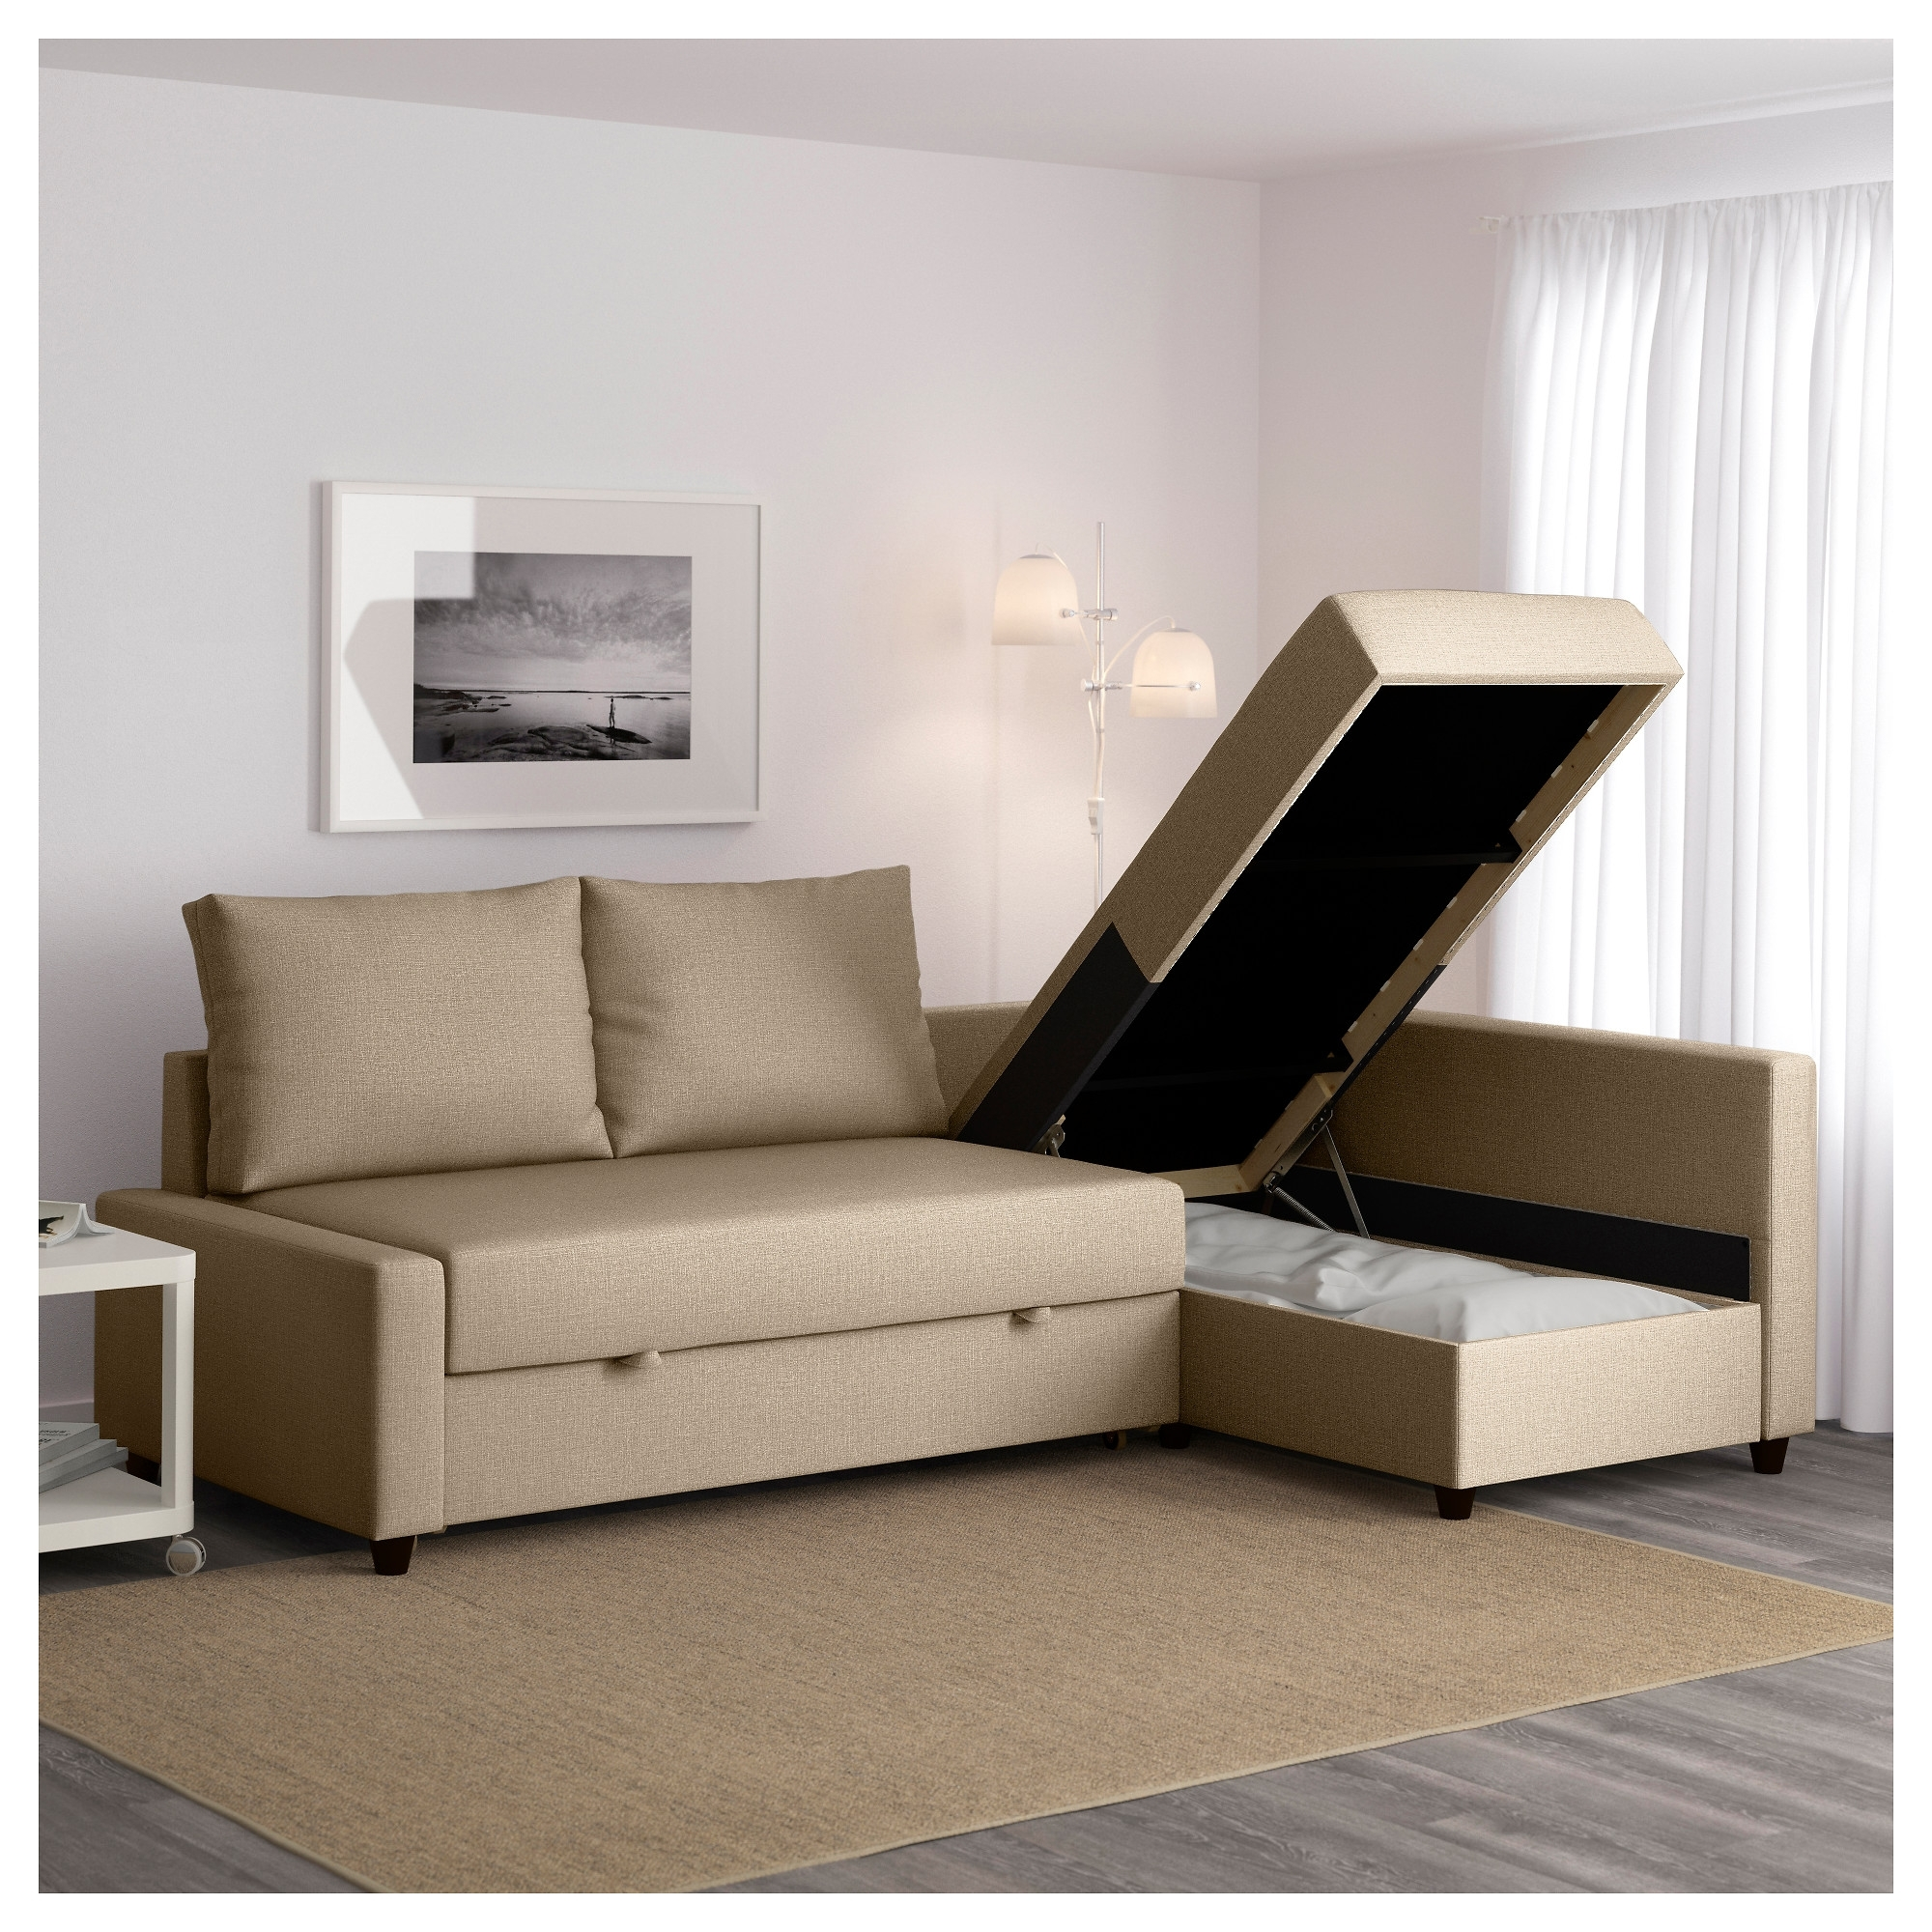 Latest Ikea Sofa Beds With Chaise Pertaining To Friheten Corner Sofa Bed With Storage Skiftebo Beige – Ikea (View 5 of 15)